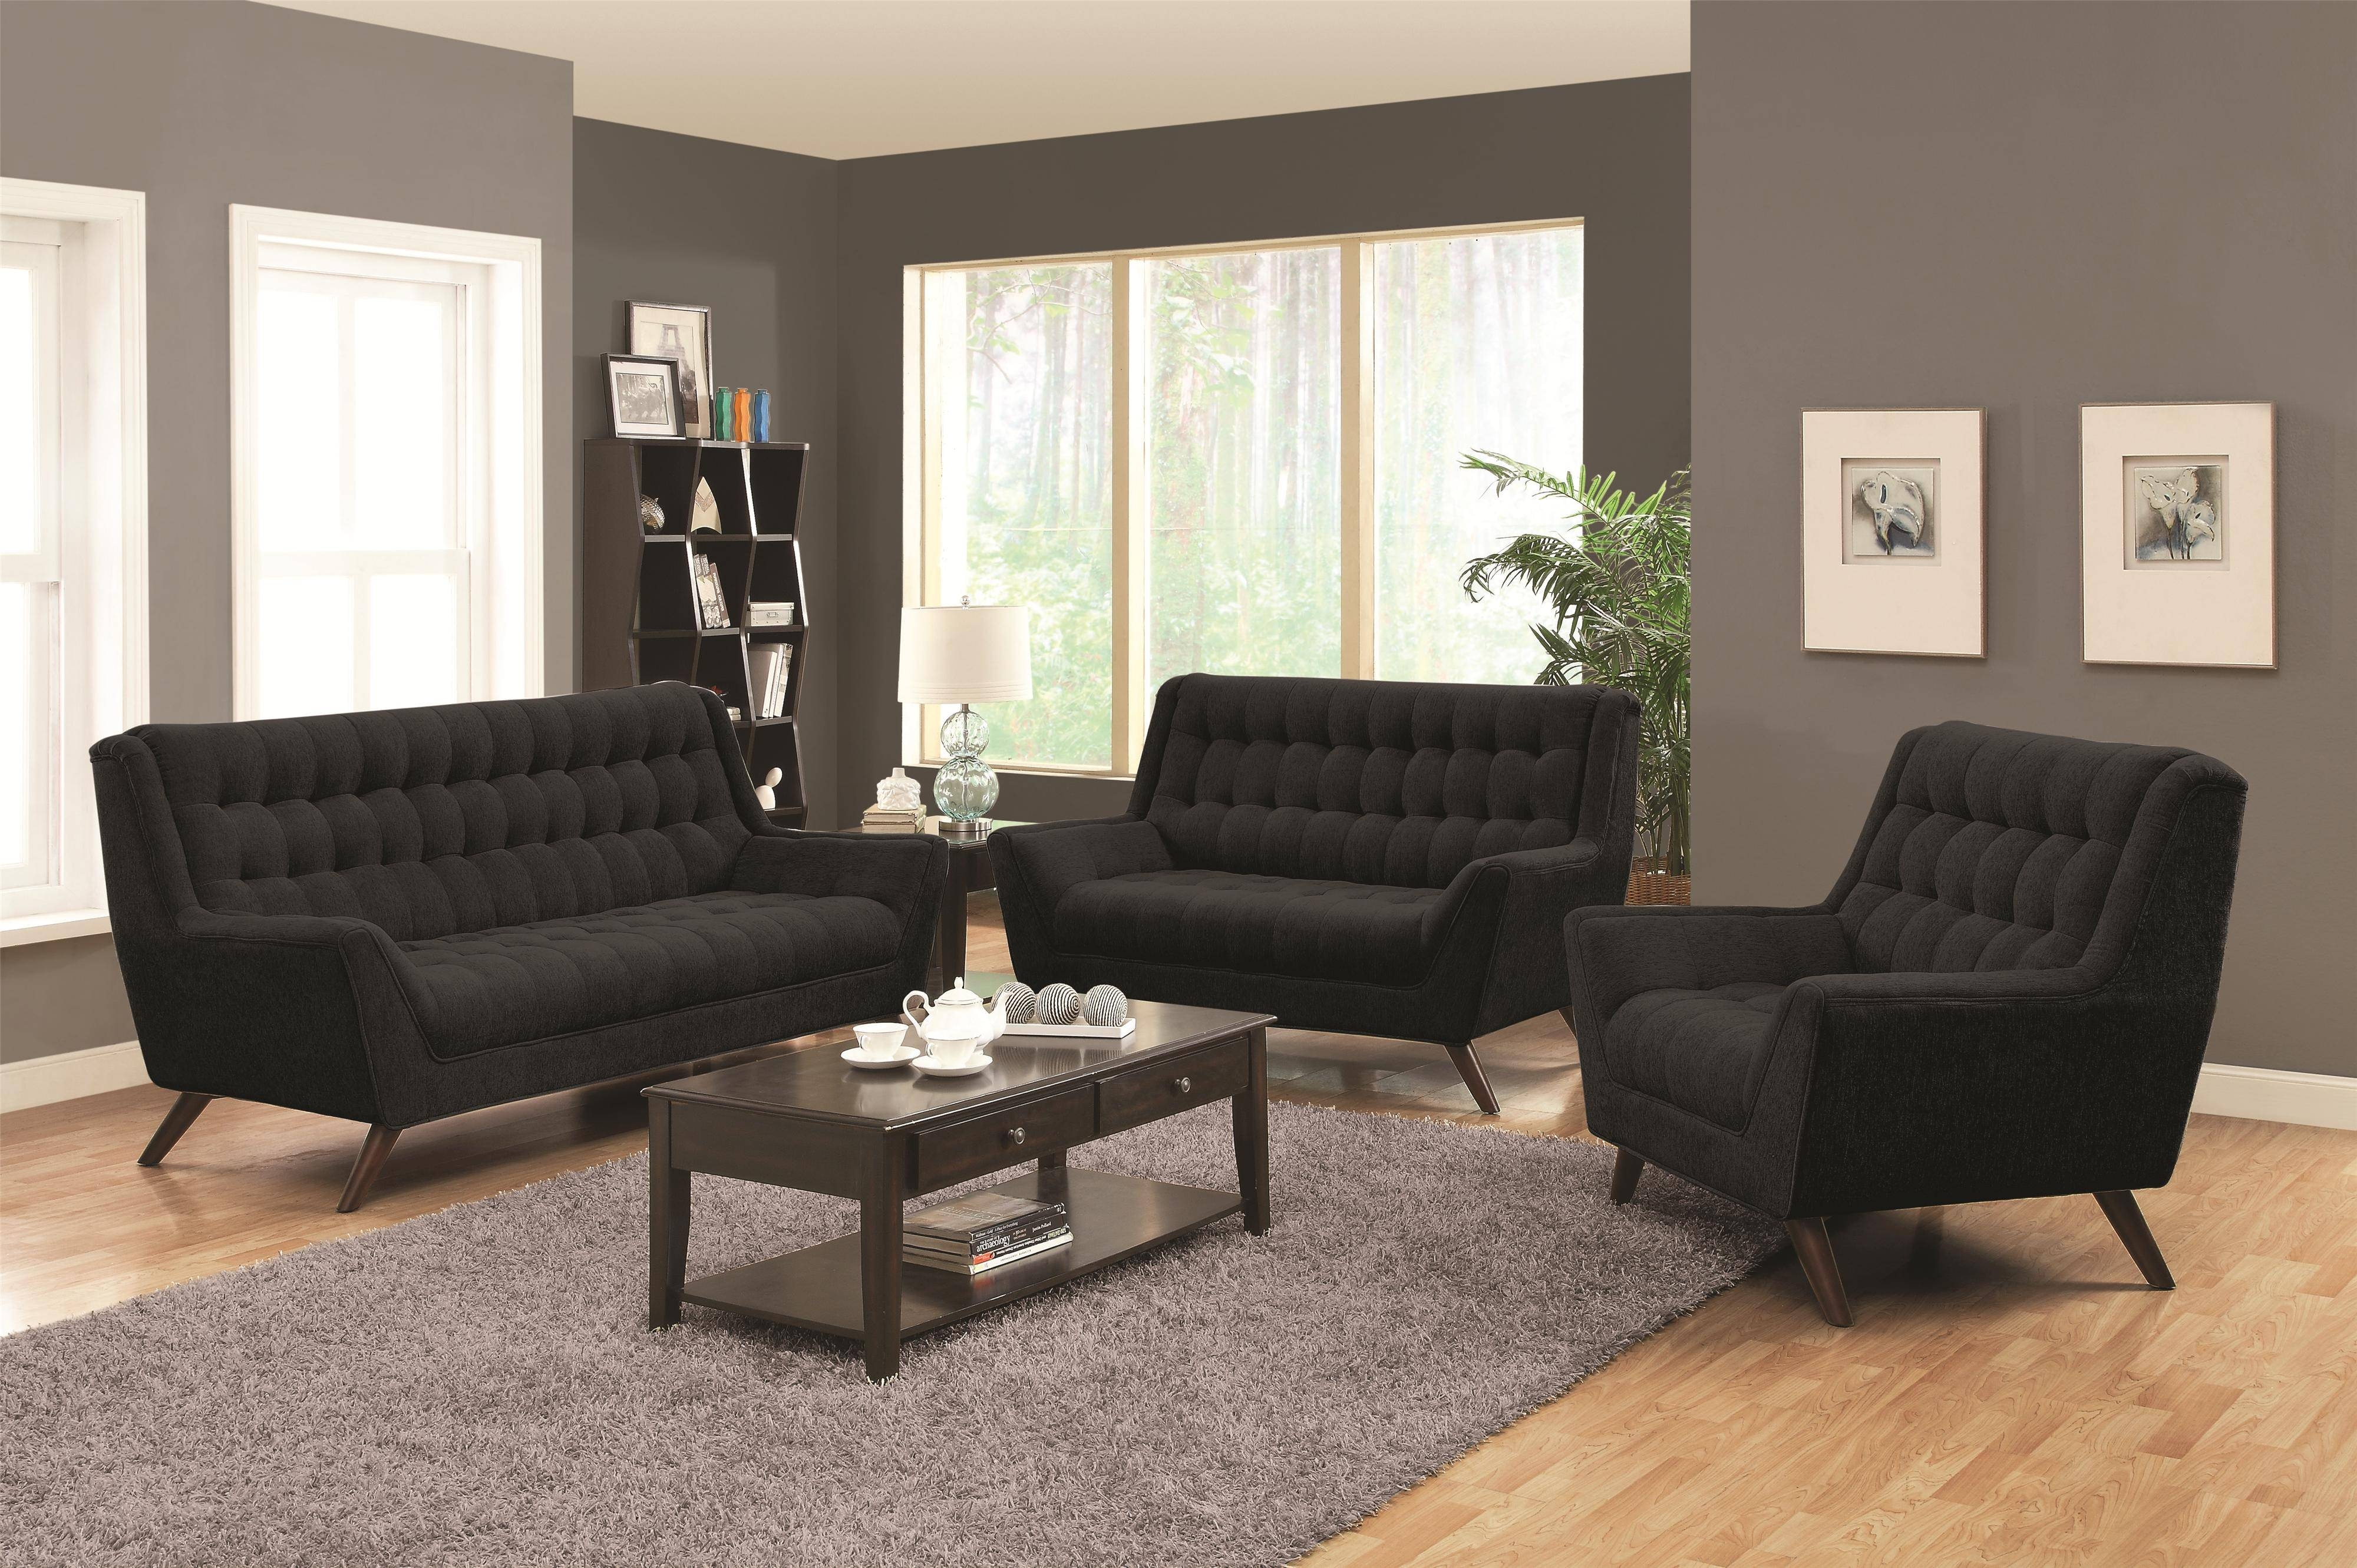 Coaster Natalia Contemporary Sectional Sofa – Coaster Fine Furniture In Coasters Sofas (View 8 of 15)